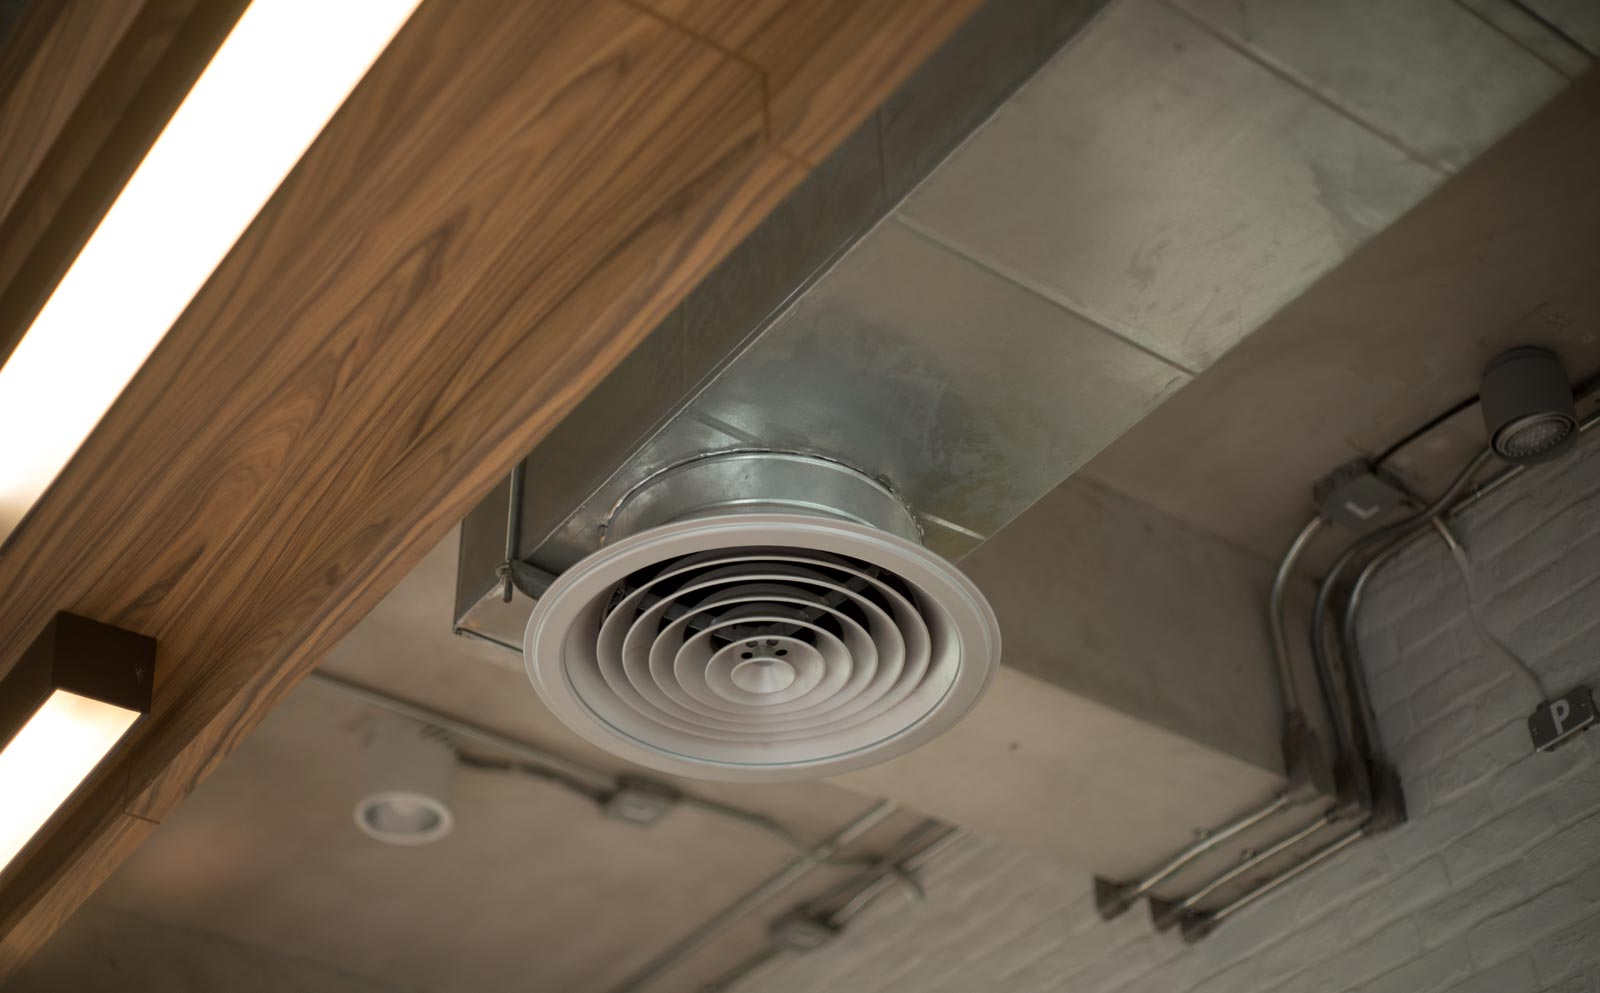 Home Ventilation System - Duct Work